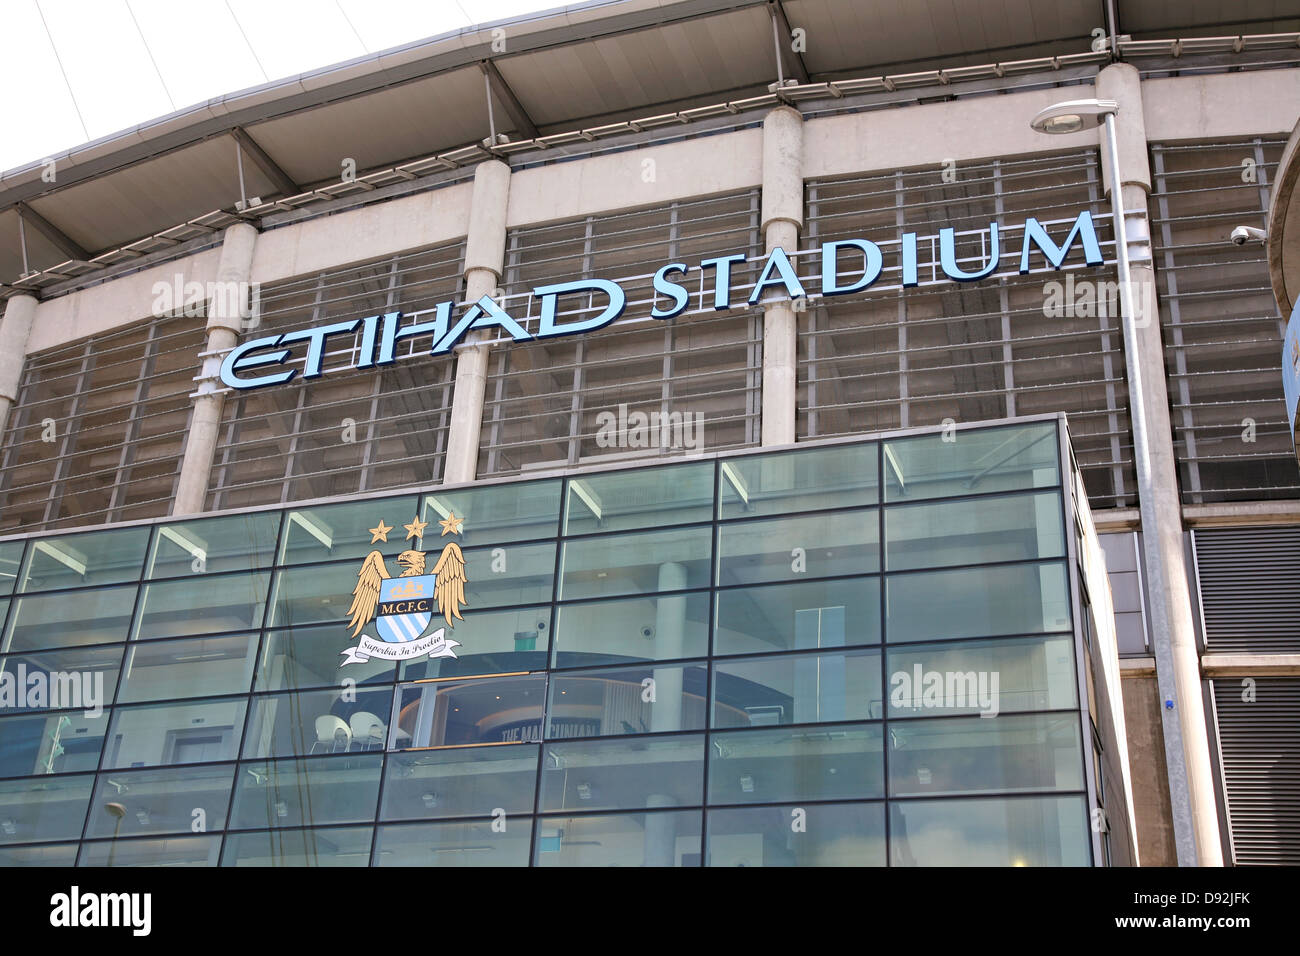 Etihad (formerly the City of Manchester) Stadium, home of Manchester City FC with old crest displayed - Stock Image